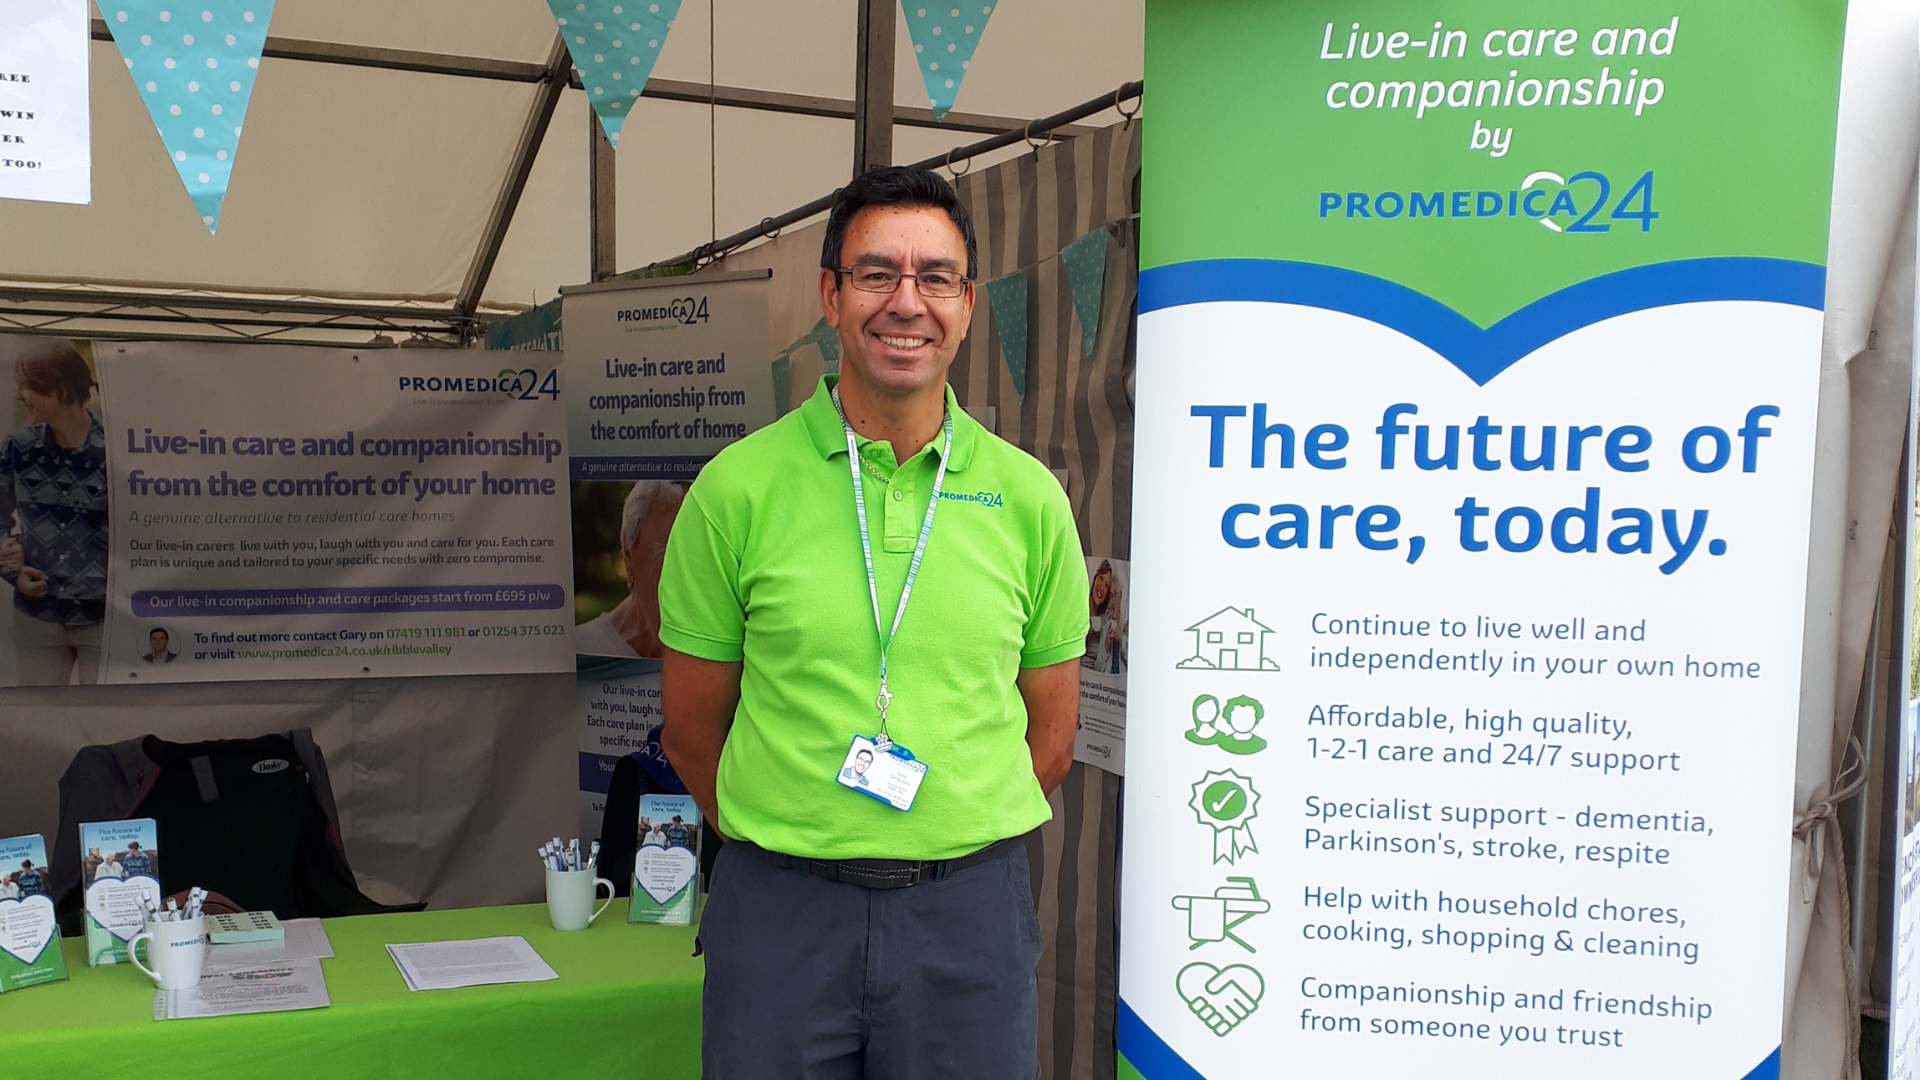 Live-in Care Provider celebrates 5th anniversary of supporting people across North Yorkshire community